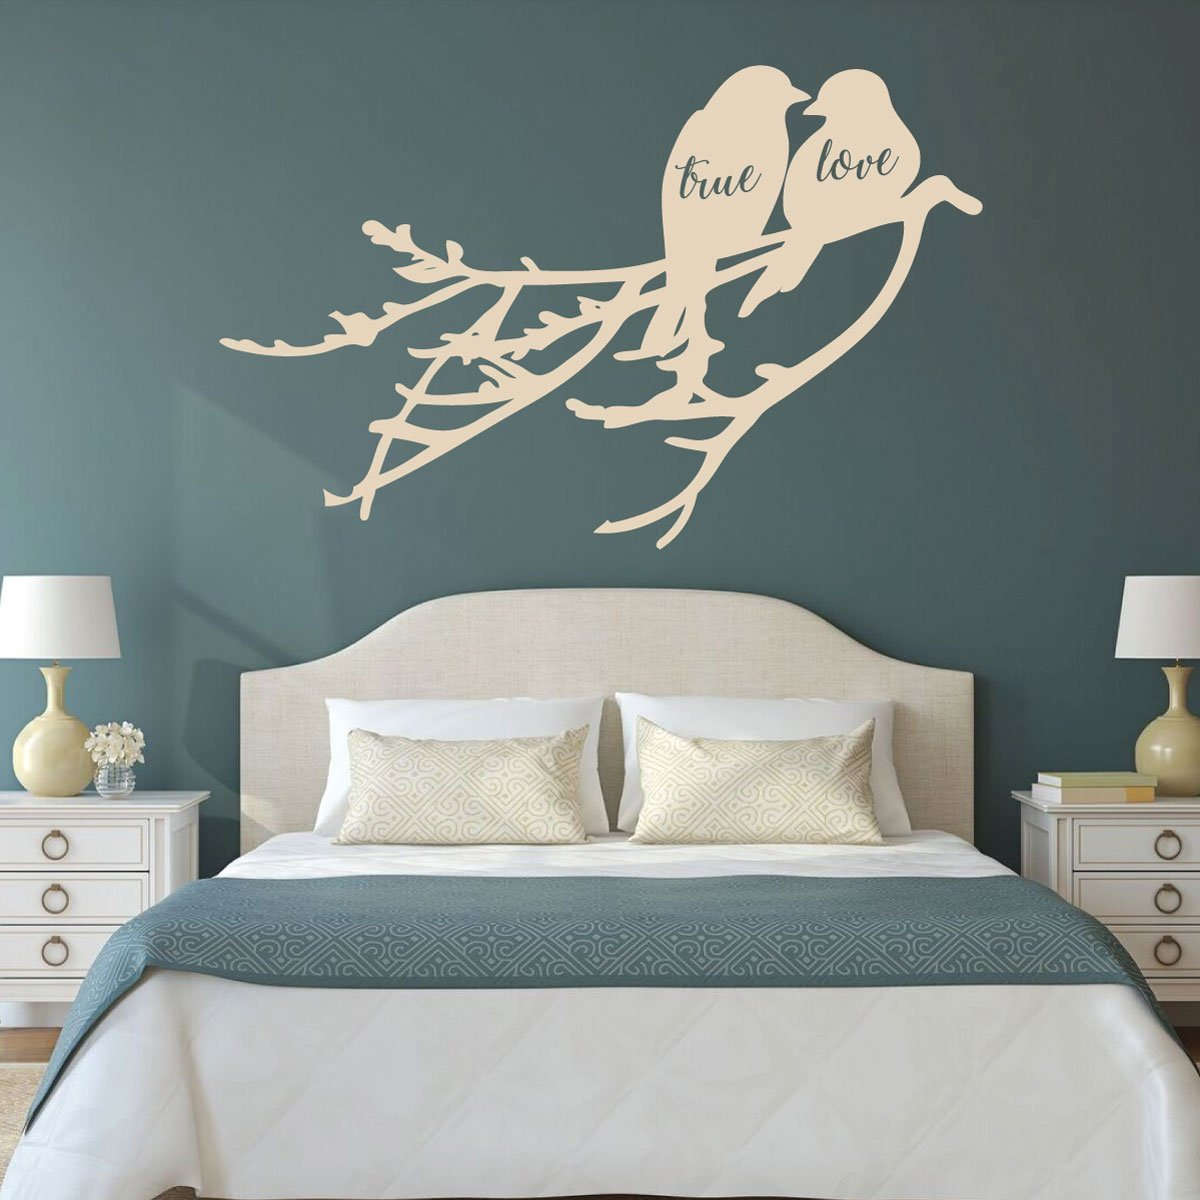 Love Birds - True Love Birds on a Branch - Love Wall Art